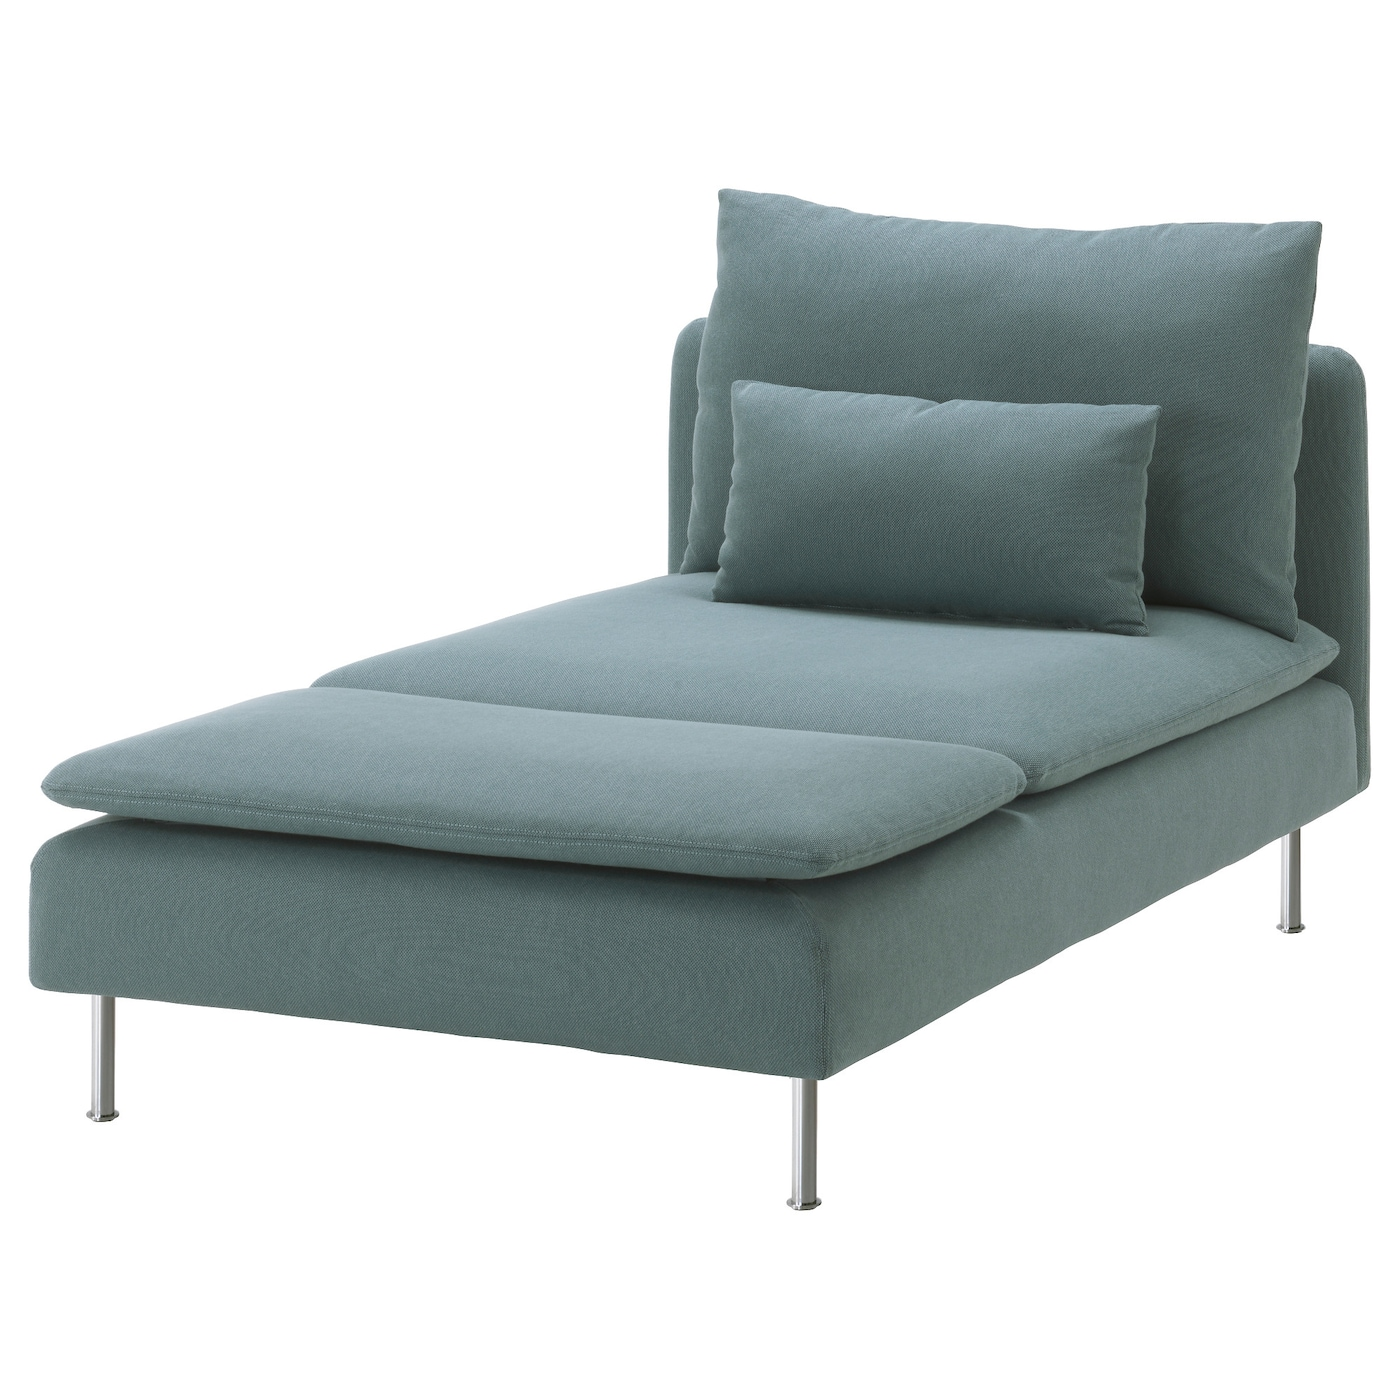 S derhamn chaise longue finnsta turquoise ikea for Daybed cushion ikea